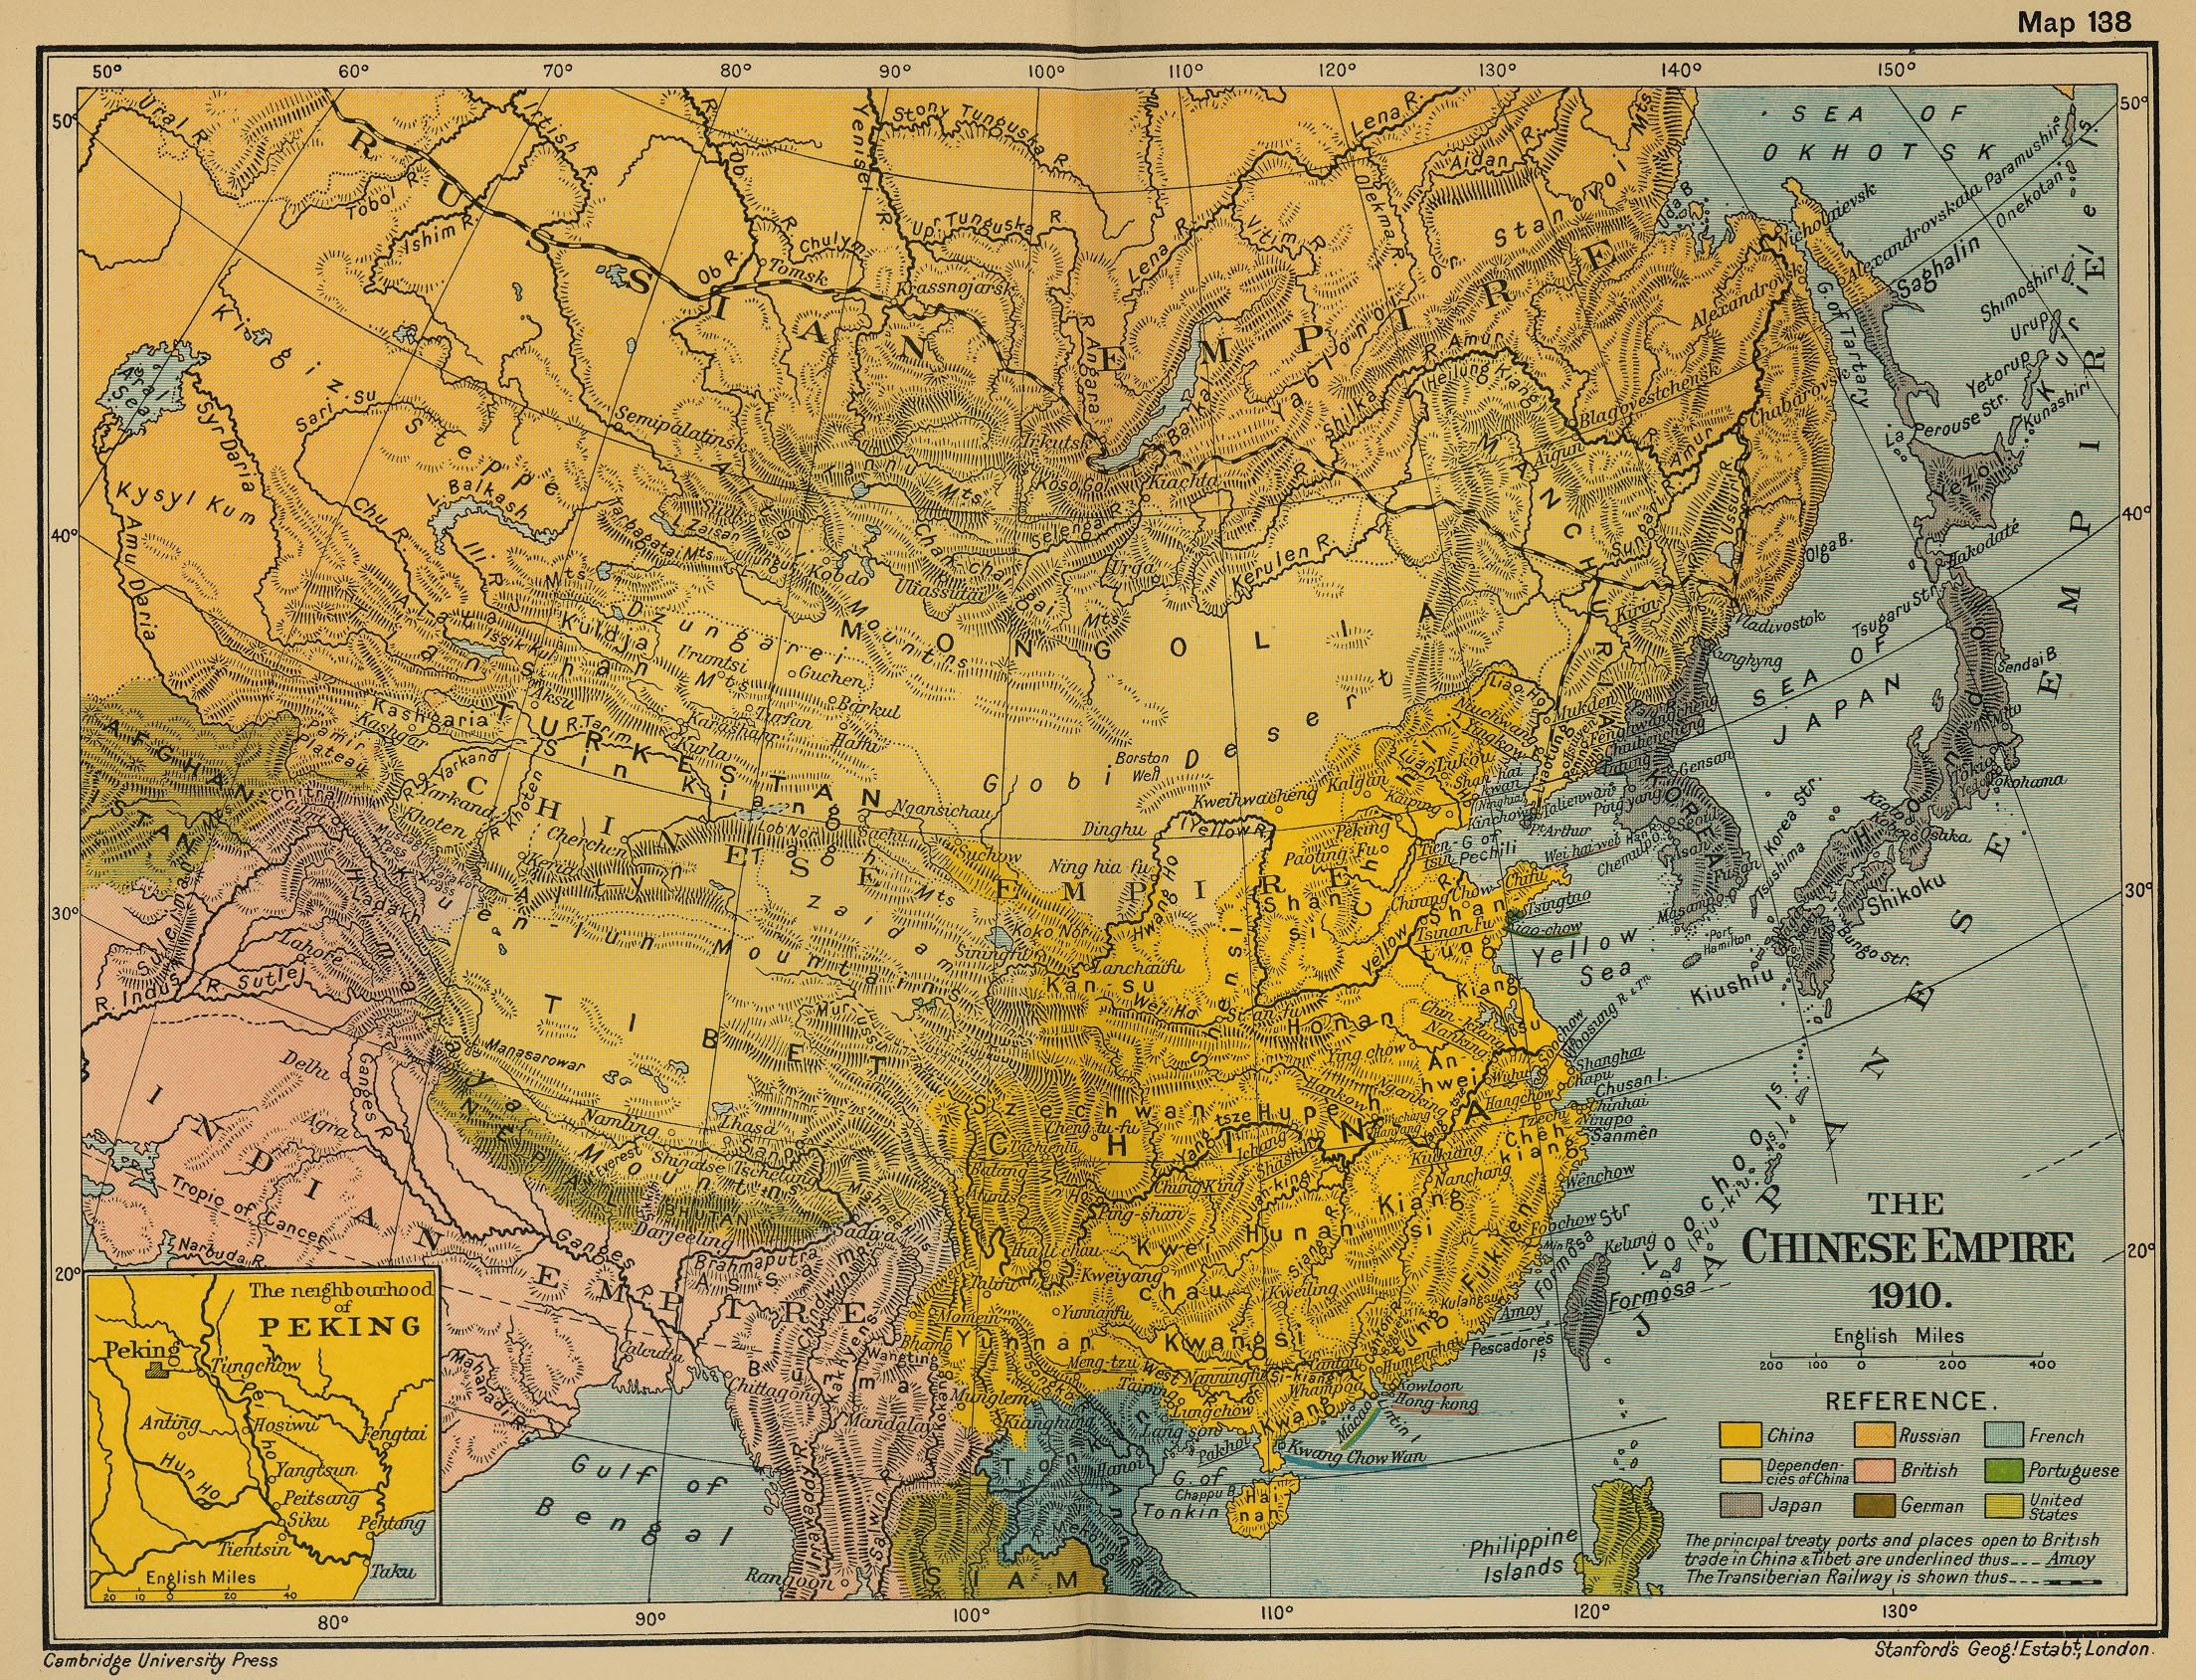 Map of the Chinese Empire 1910